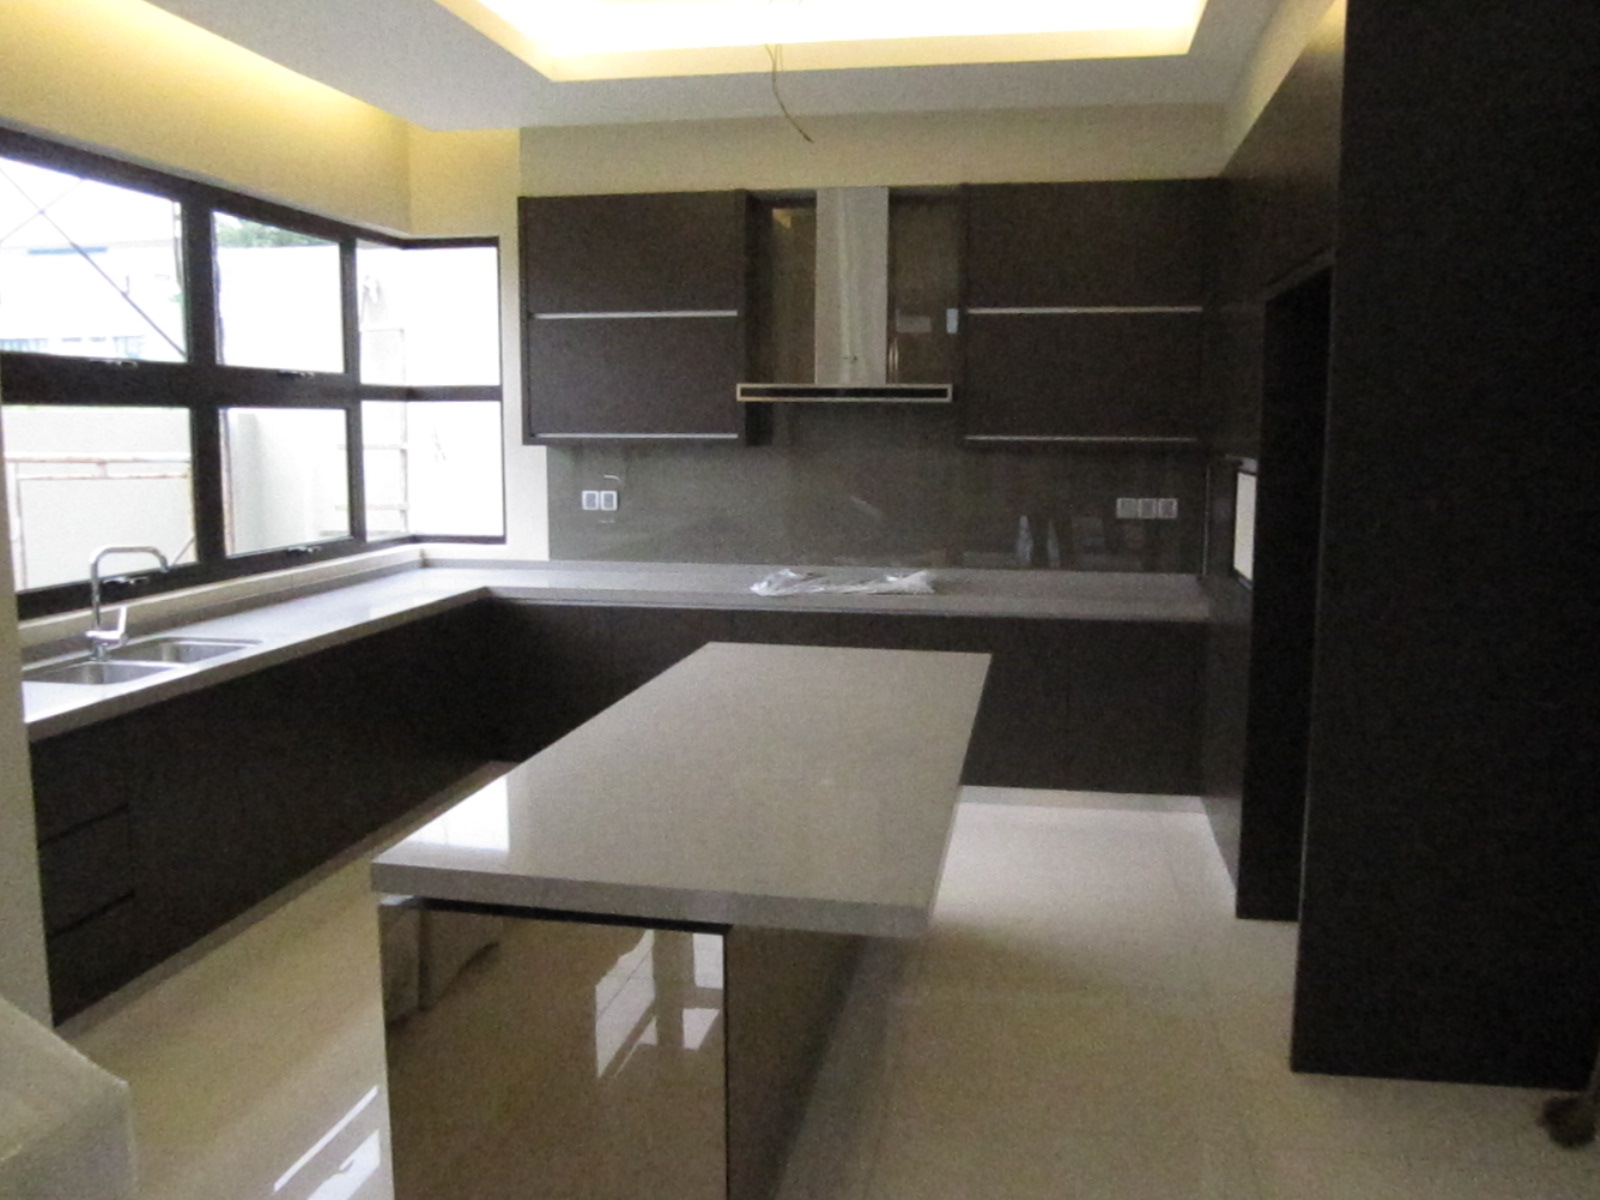 Kitchen Cabinets Online Malaysia Modern Home Living Kitchen Cabinets Lky Renovation Works